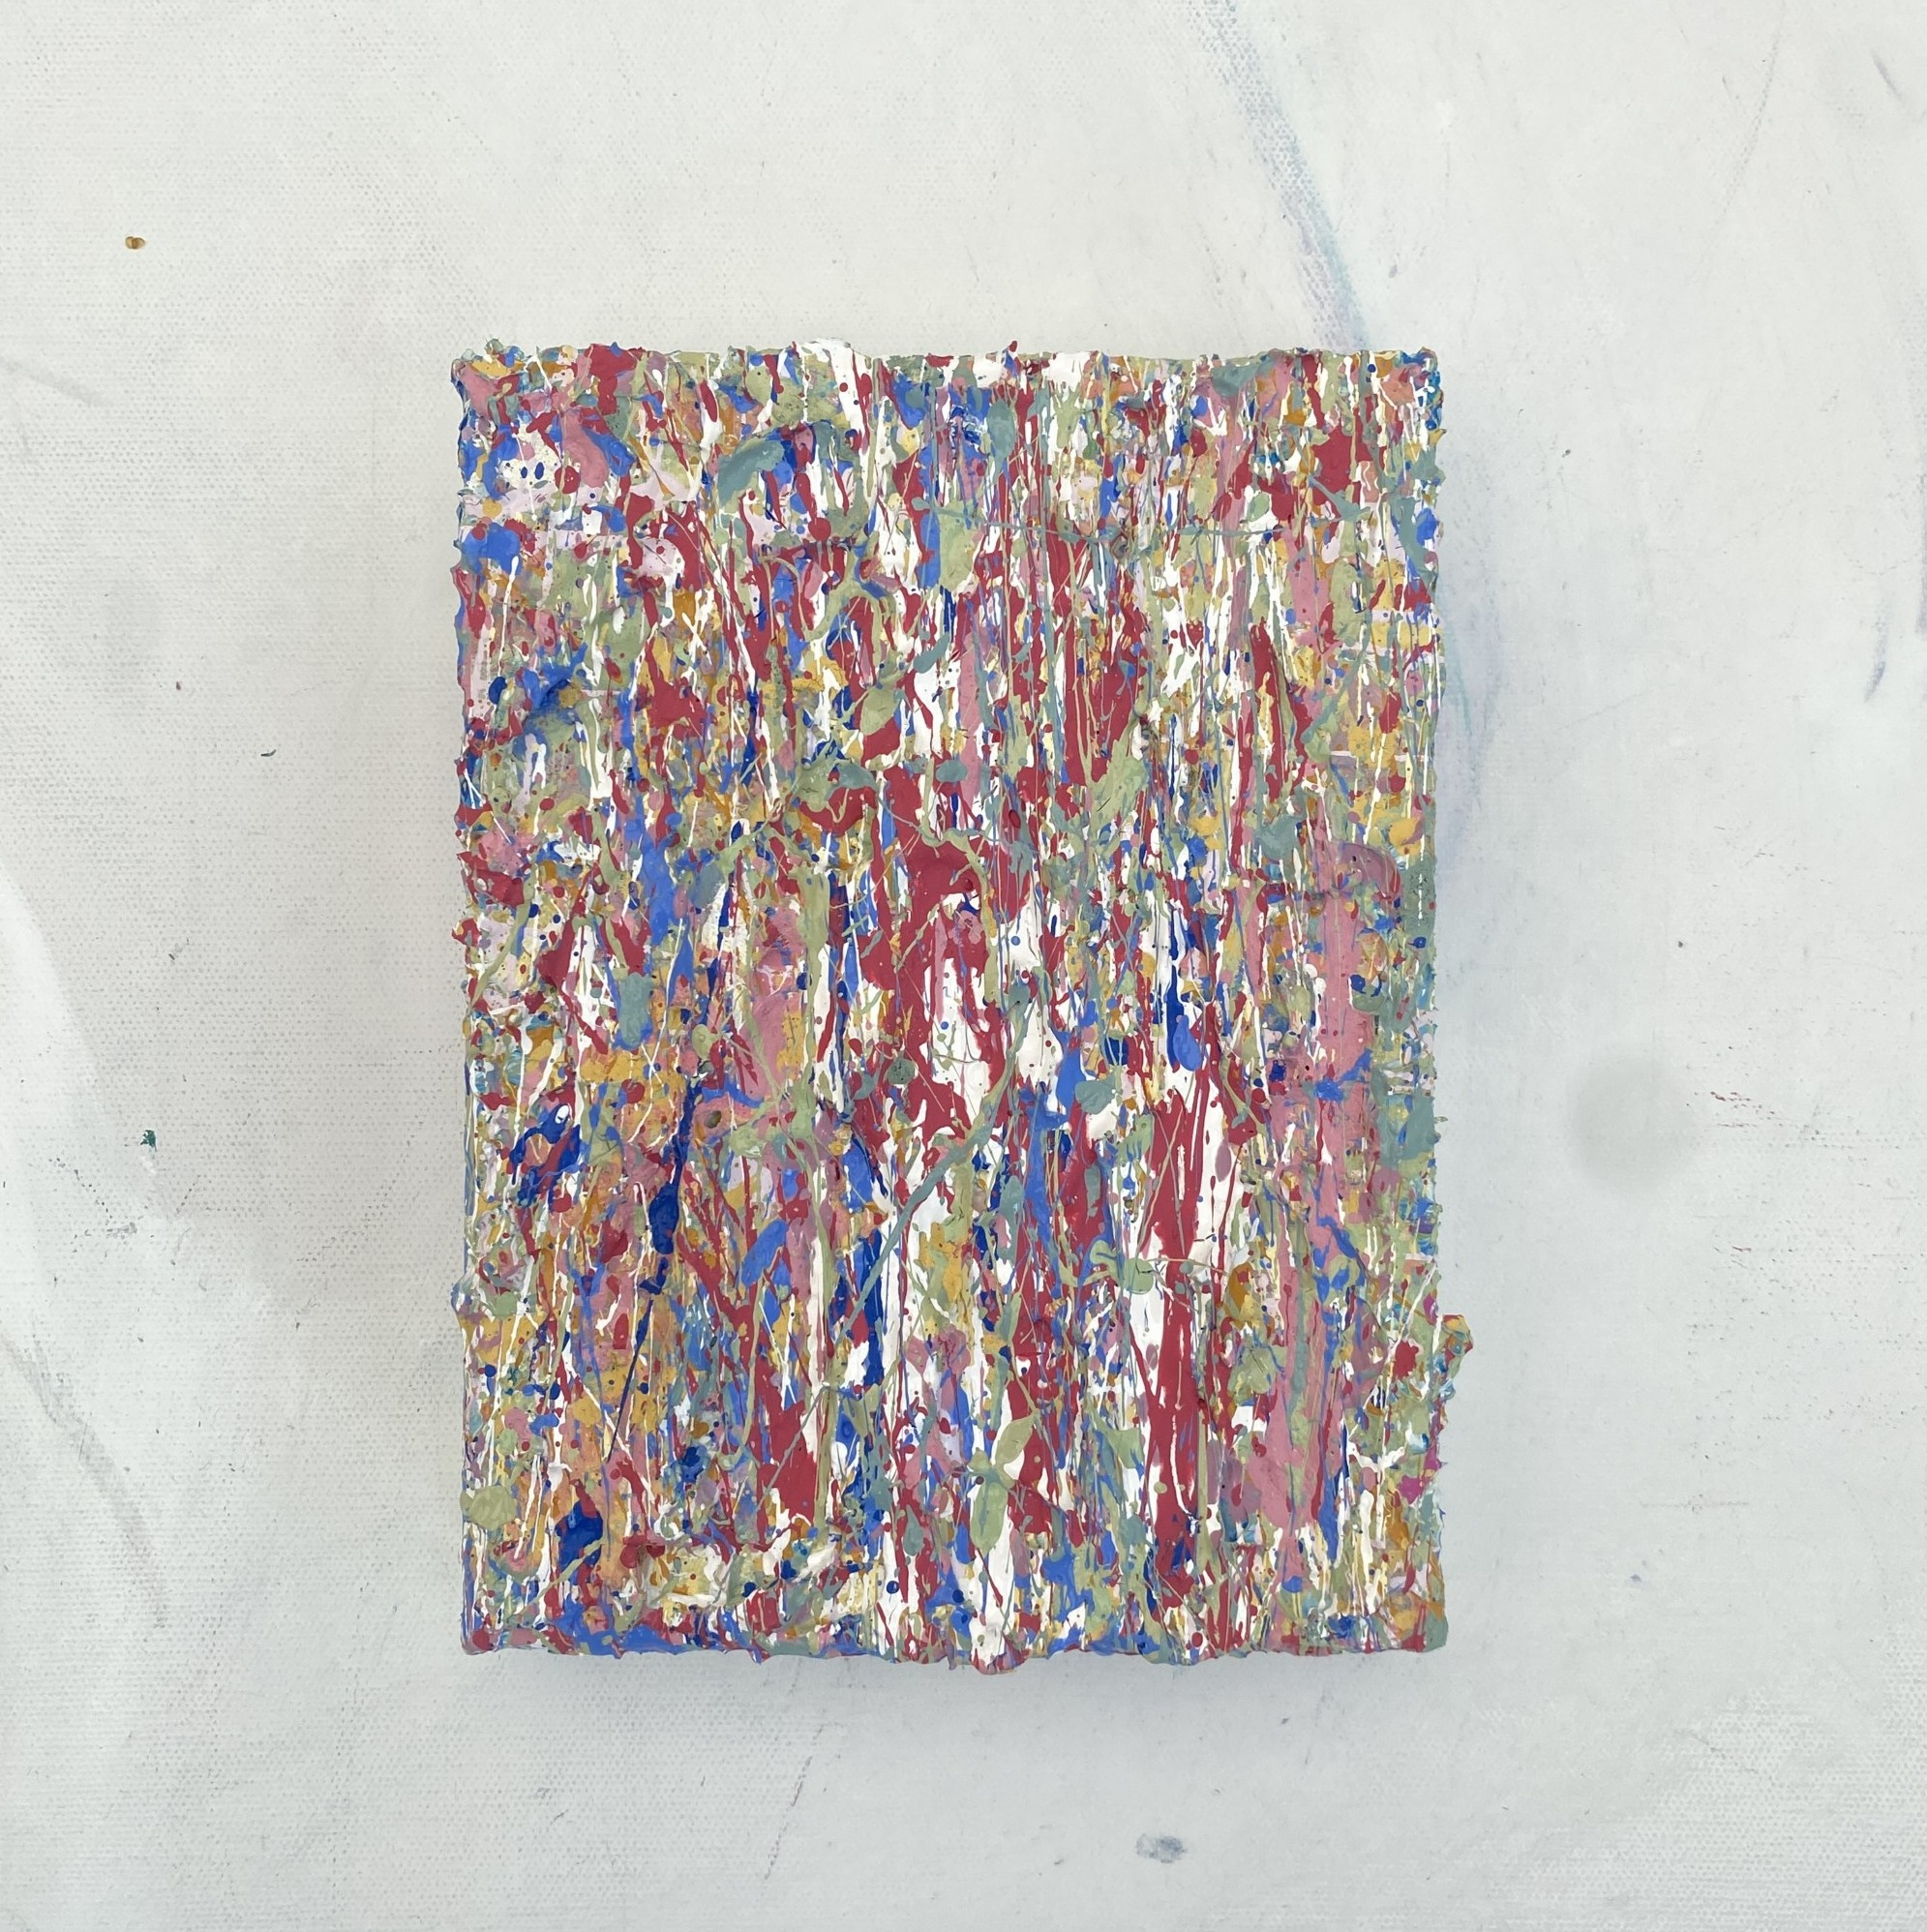 gallery view photography of a painting called elements nine a textured artwork created using plastic free eco friendly paints by abstract somerset artist emily duchscherer kirk